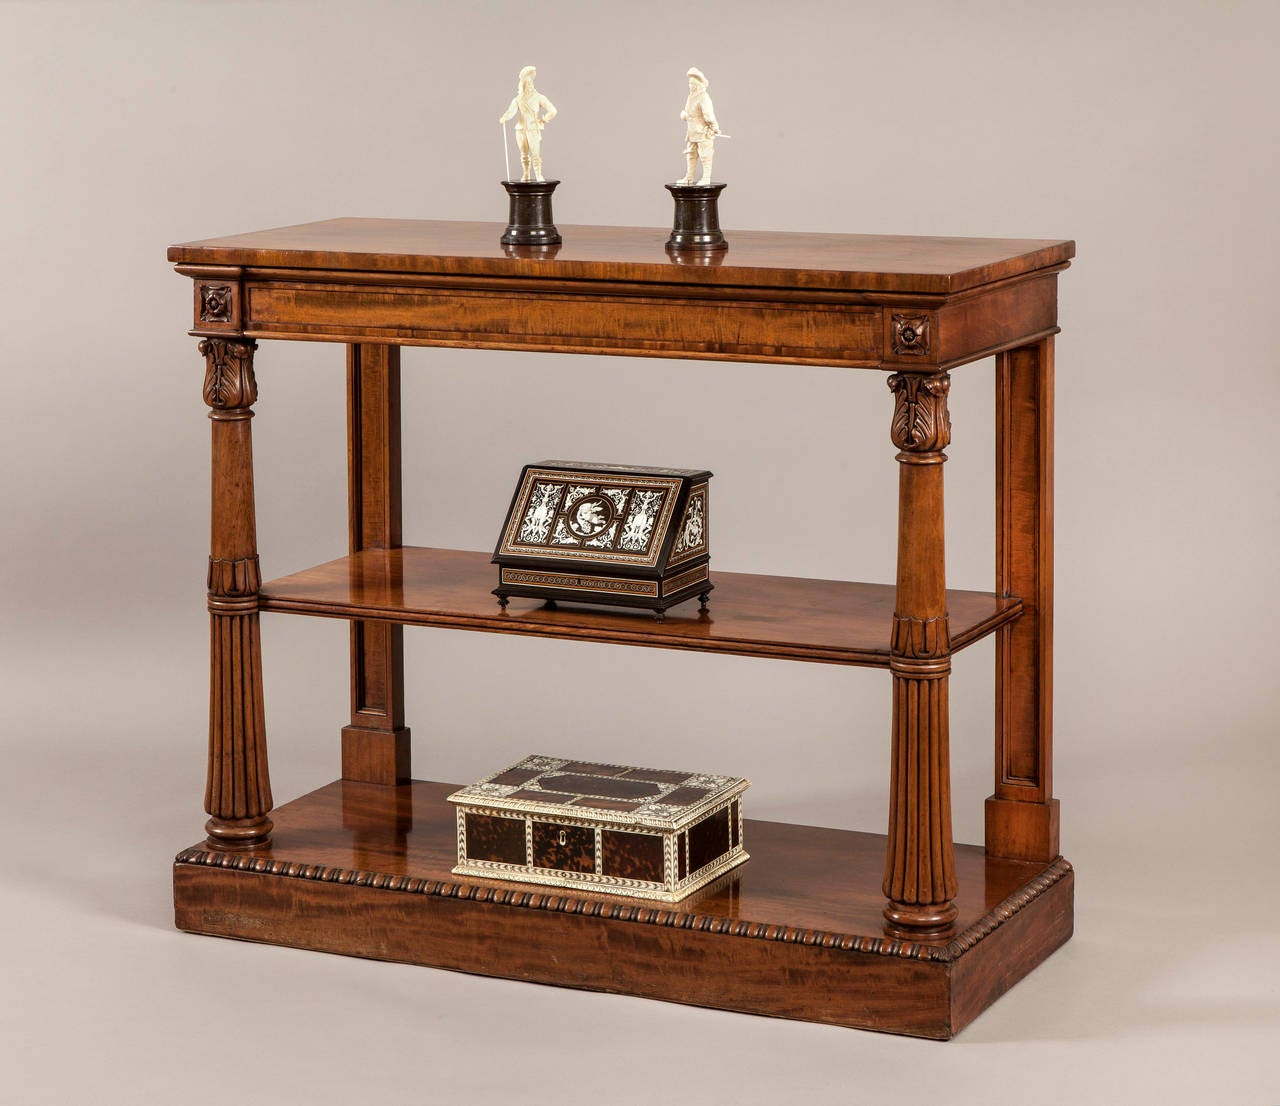 A serving table in the Regency period Neo-Grecian manner.